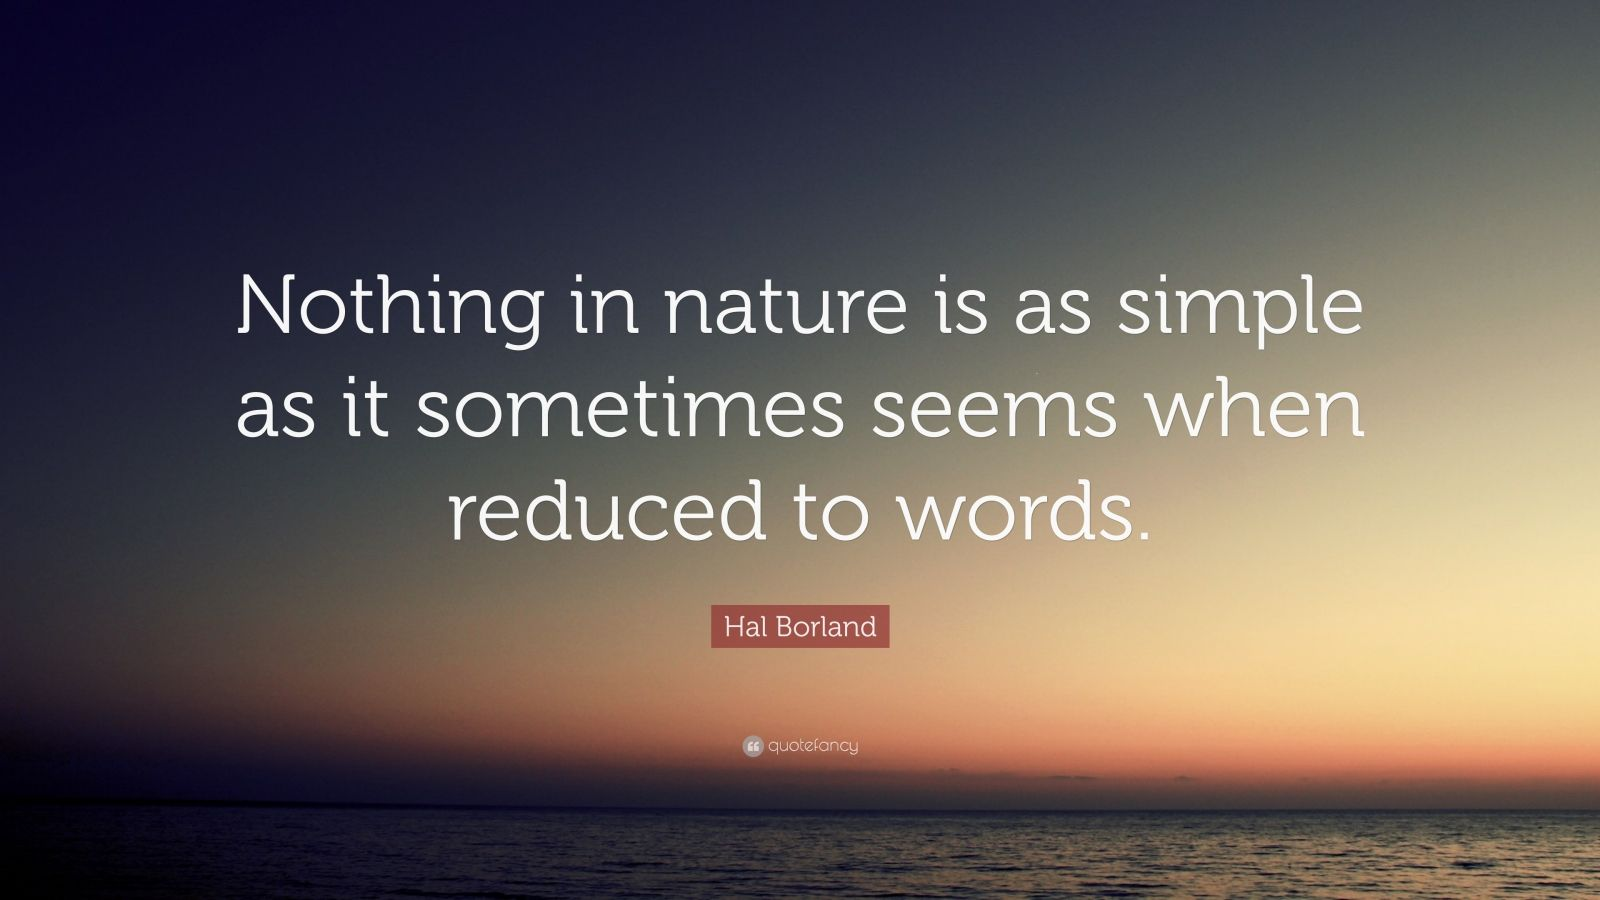 """Hal Borland Quote: """"Nothing in nature is as simple as it sometimes seems when reduced to words."""""""